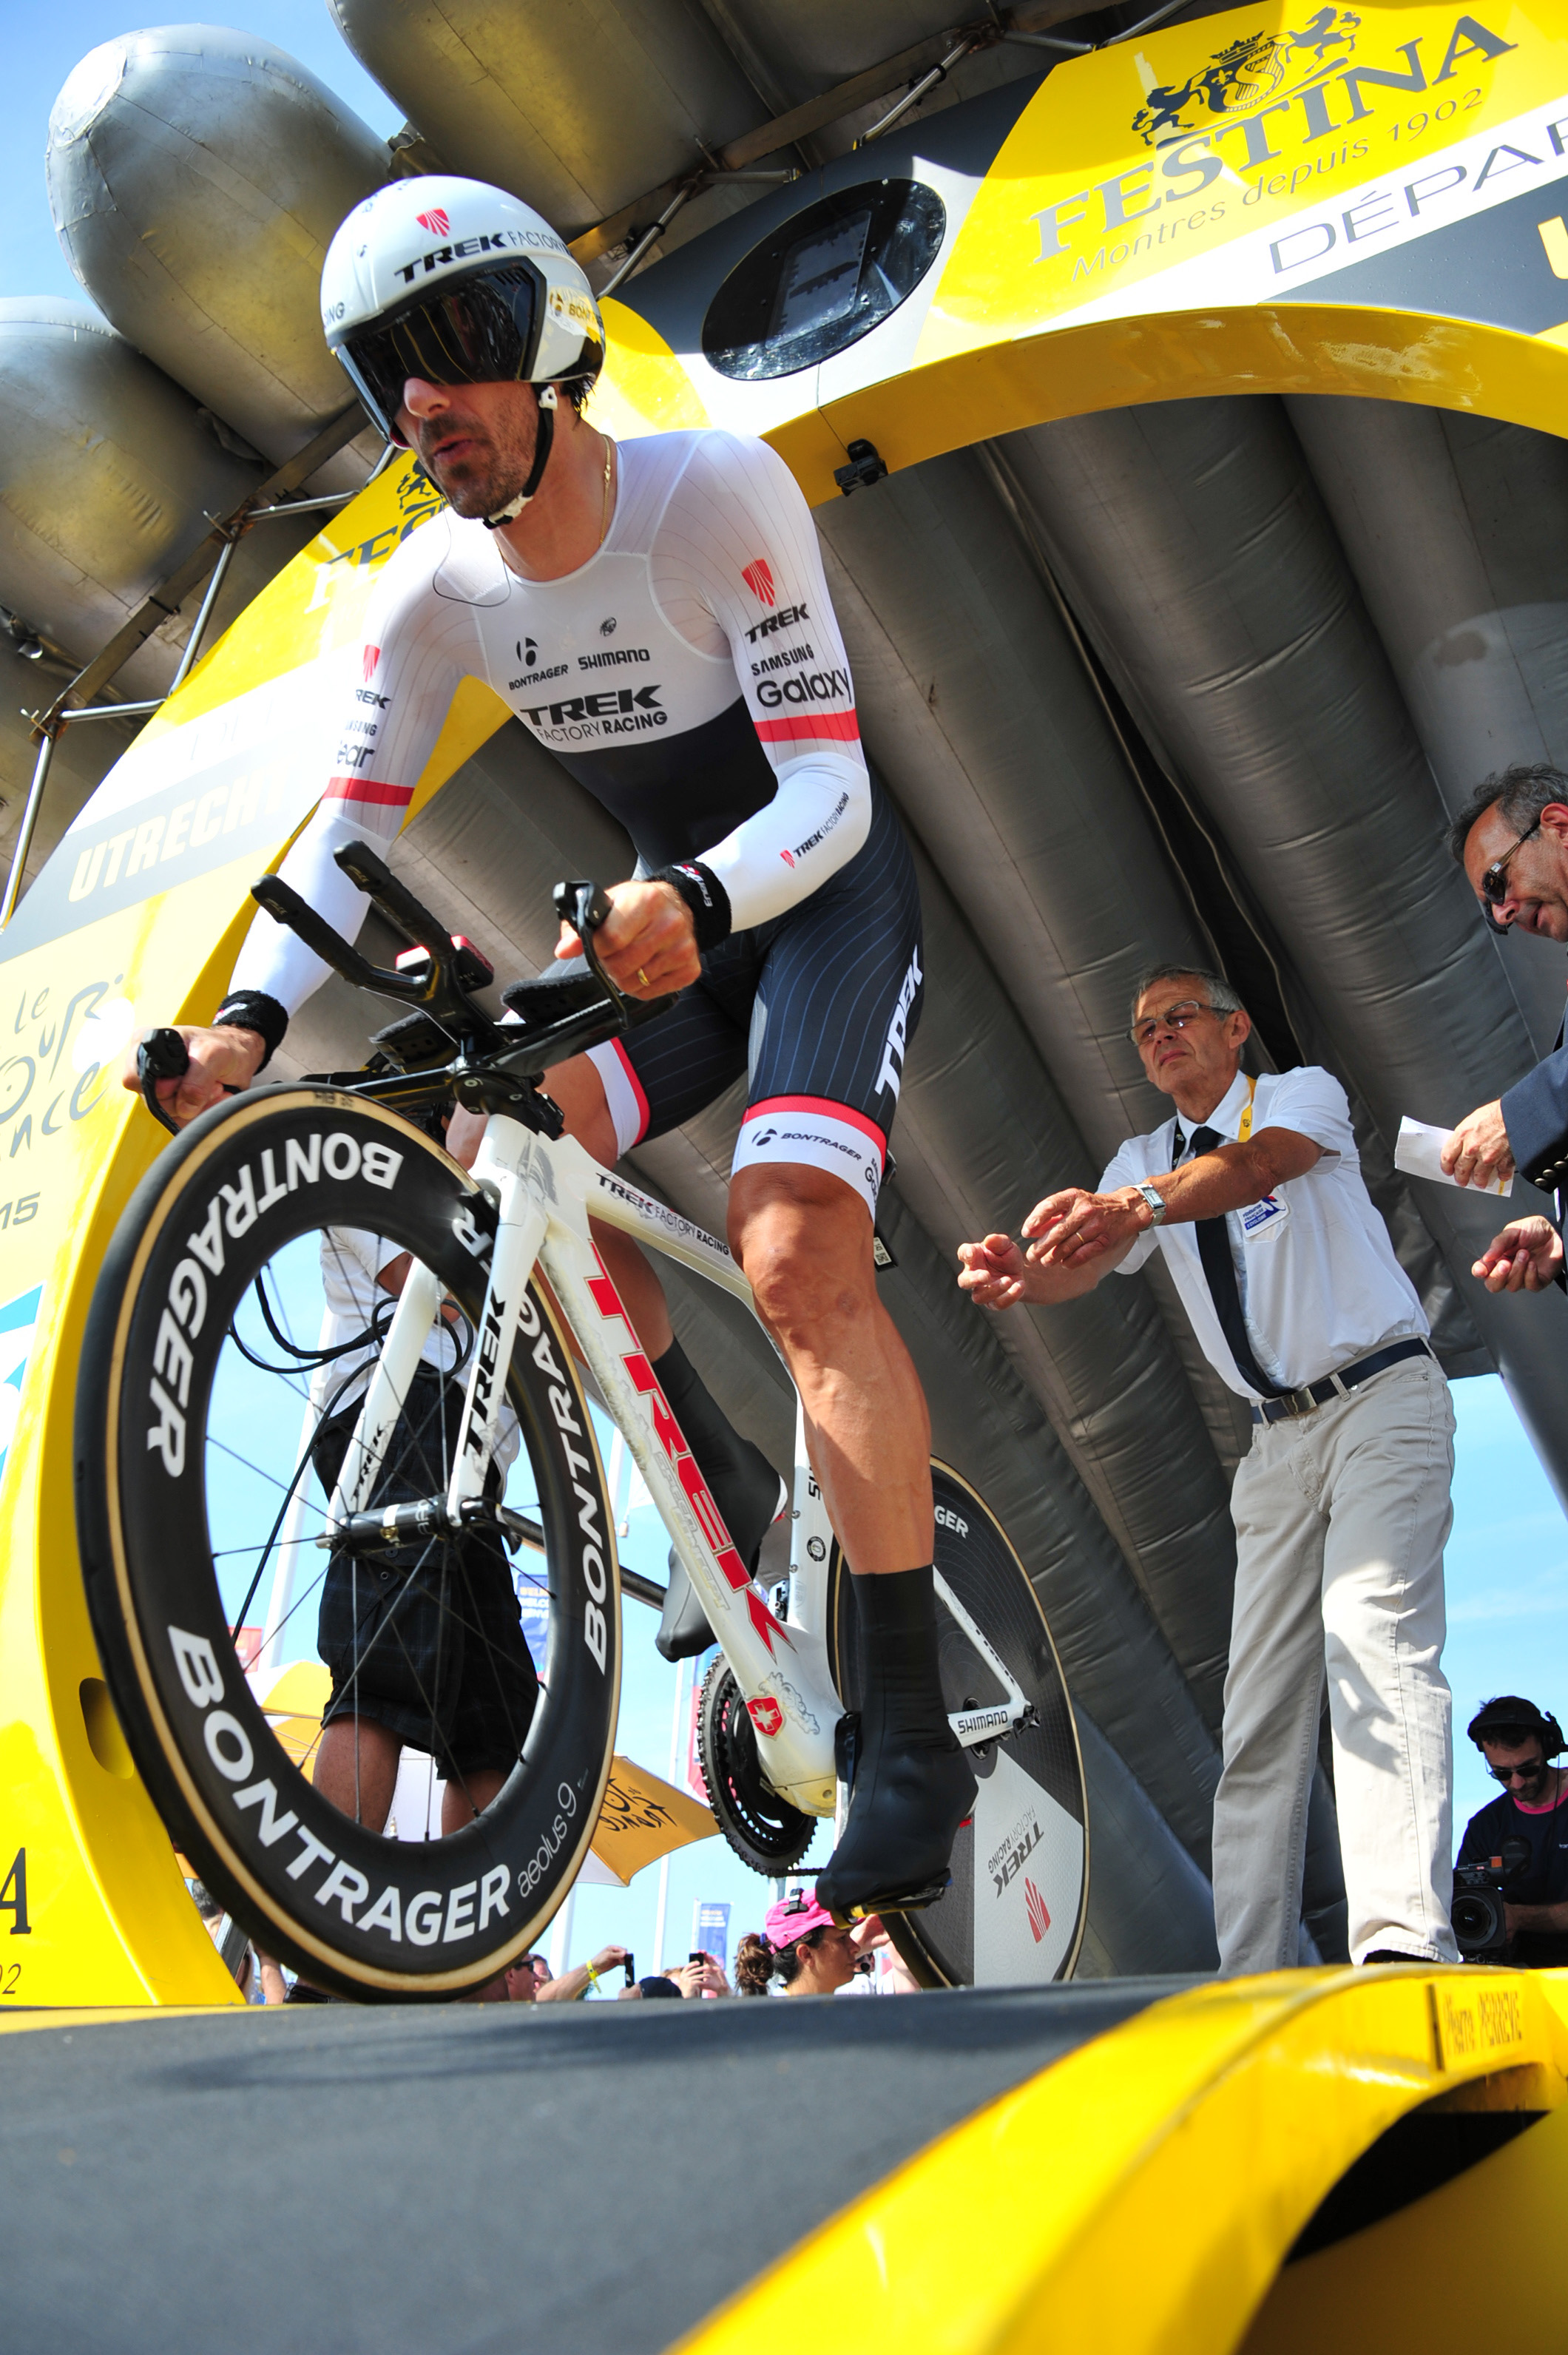 Fabian Cancellara - Trek Factory Racing